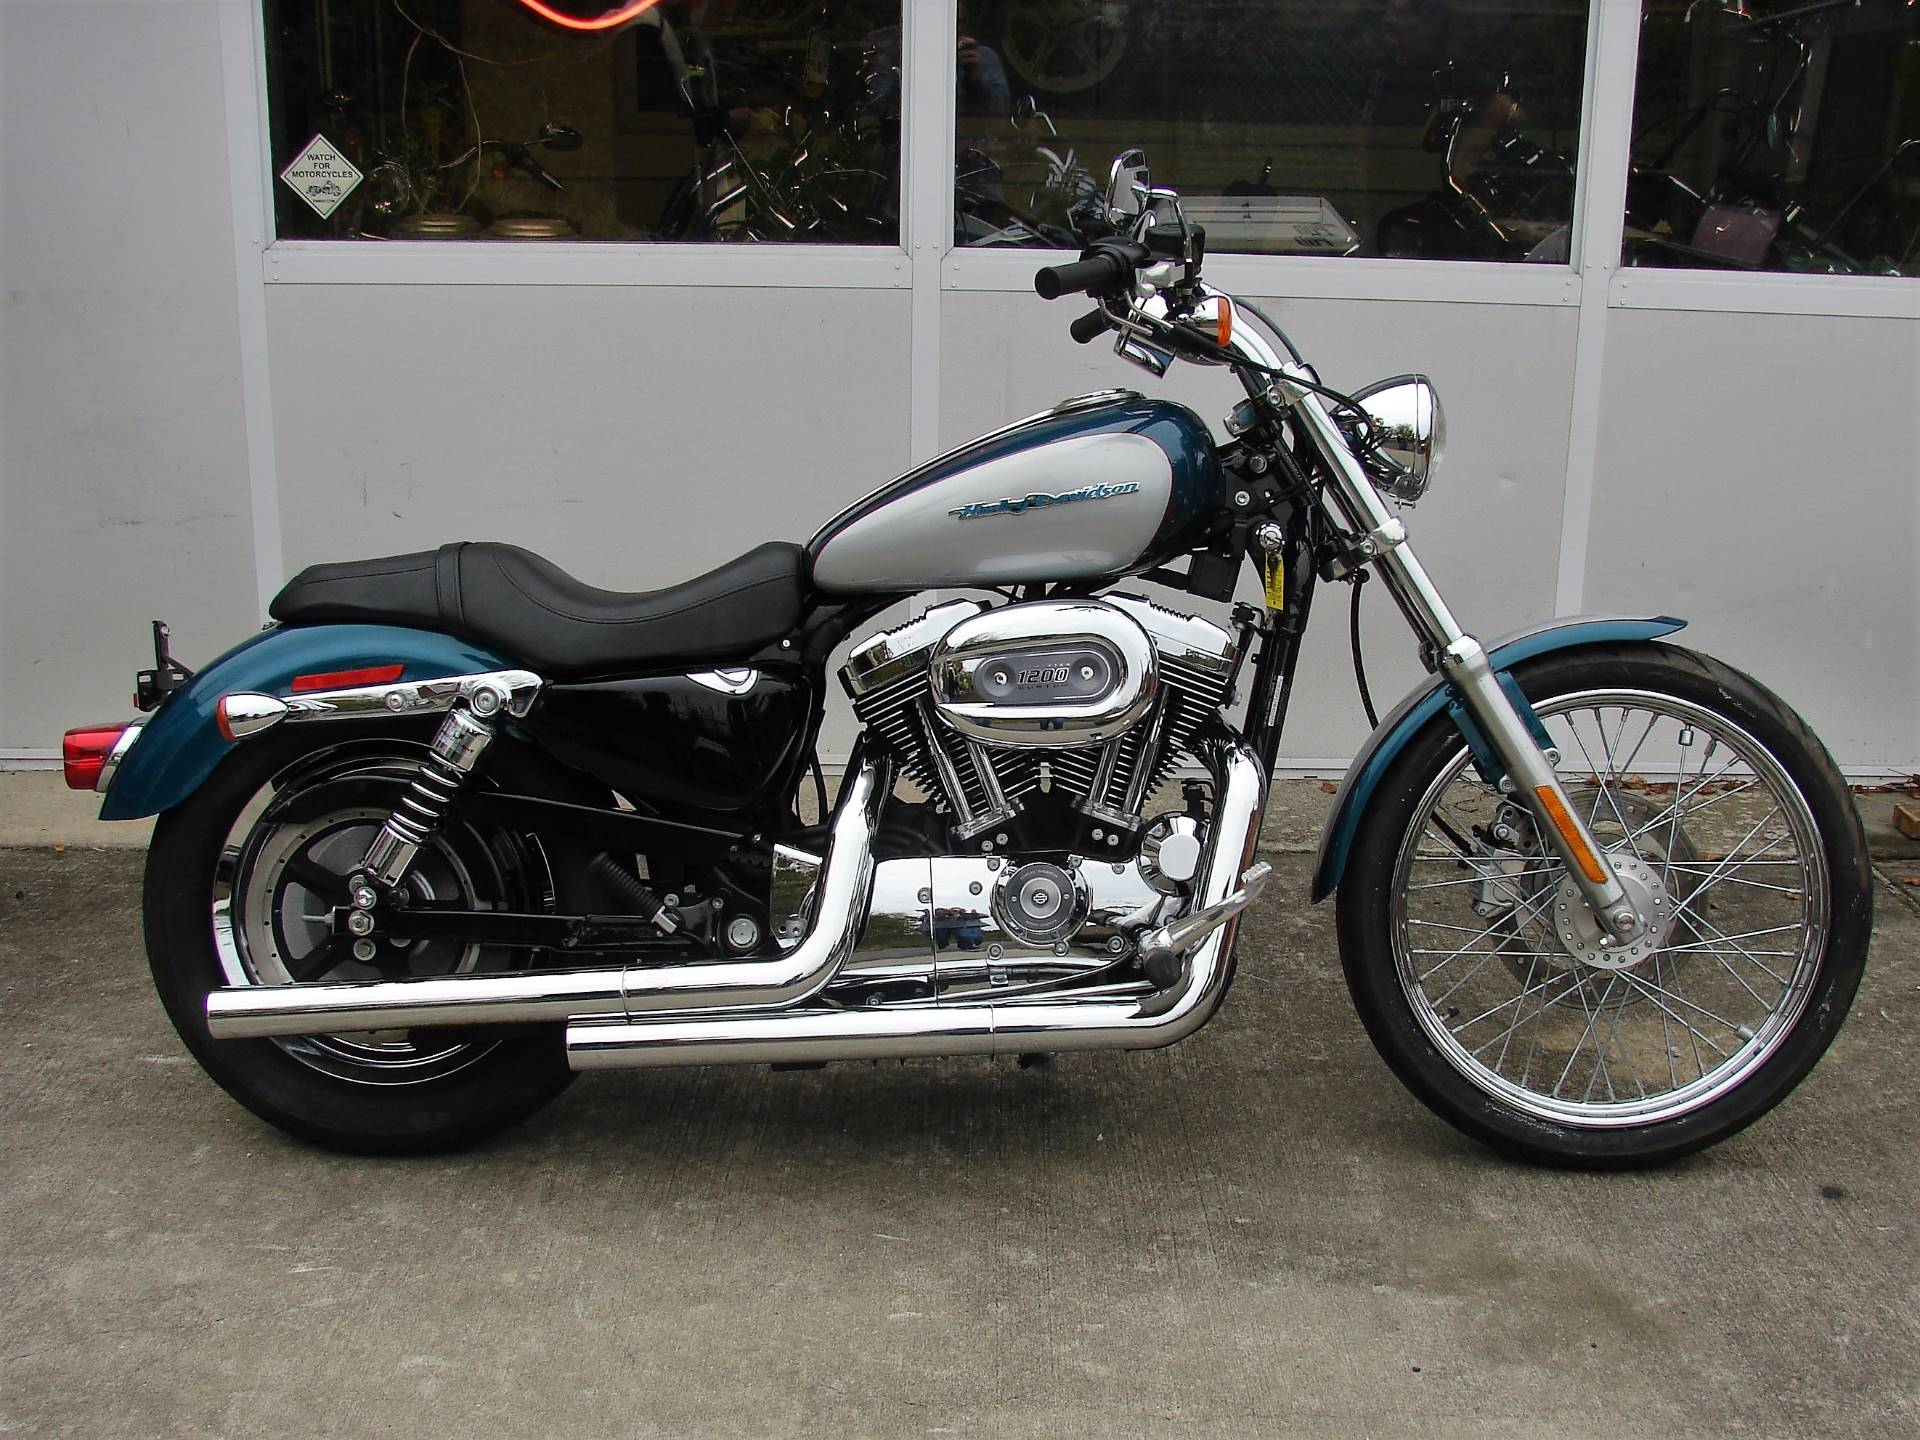 2004 Harley-Davidson Sportster XL 1200 Custom in Williamstown, New Jersey - Photo 12